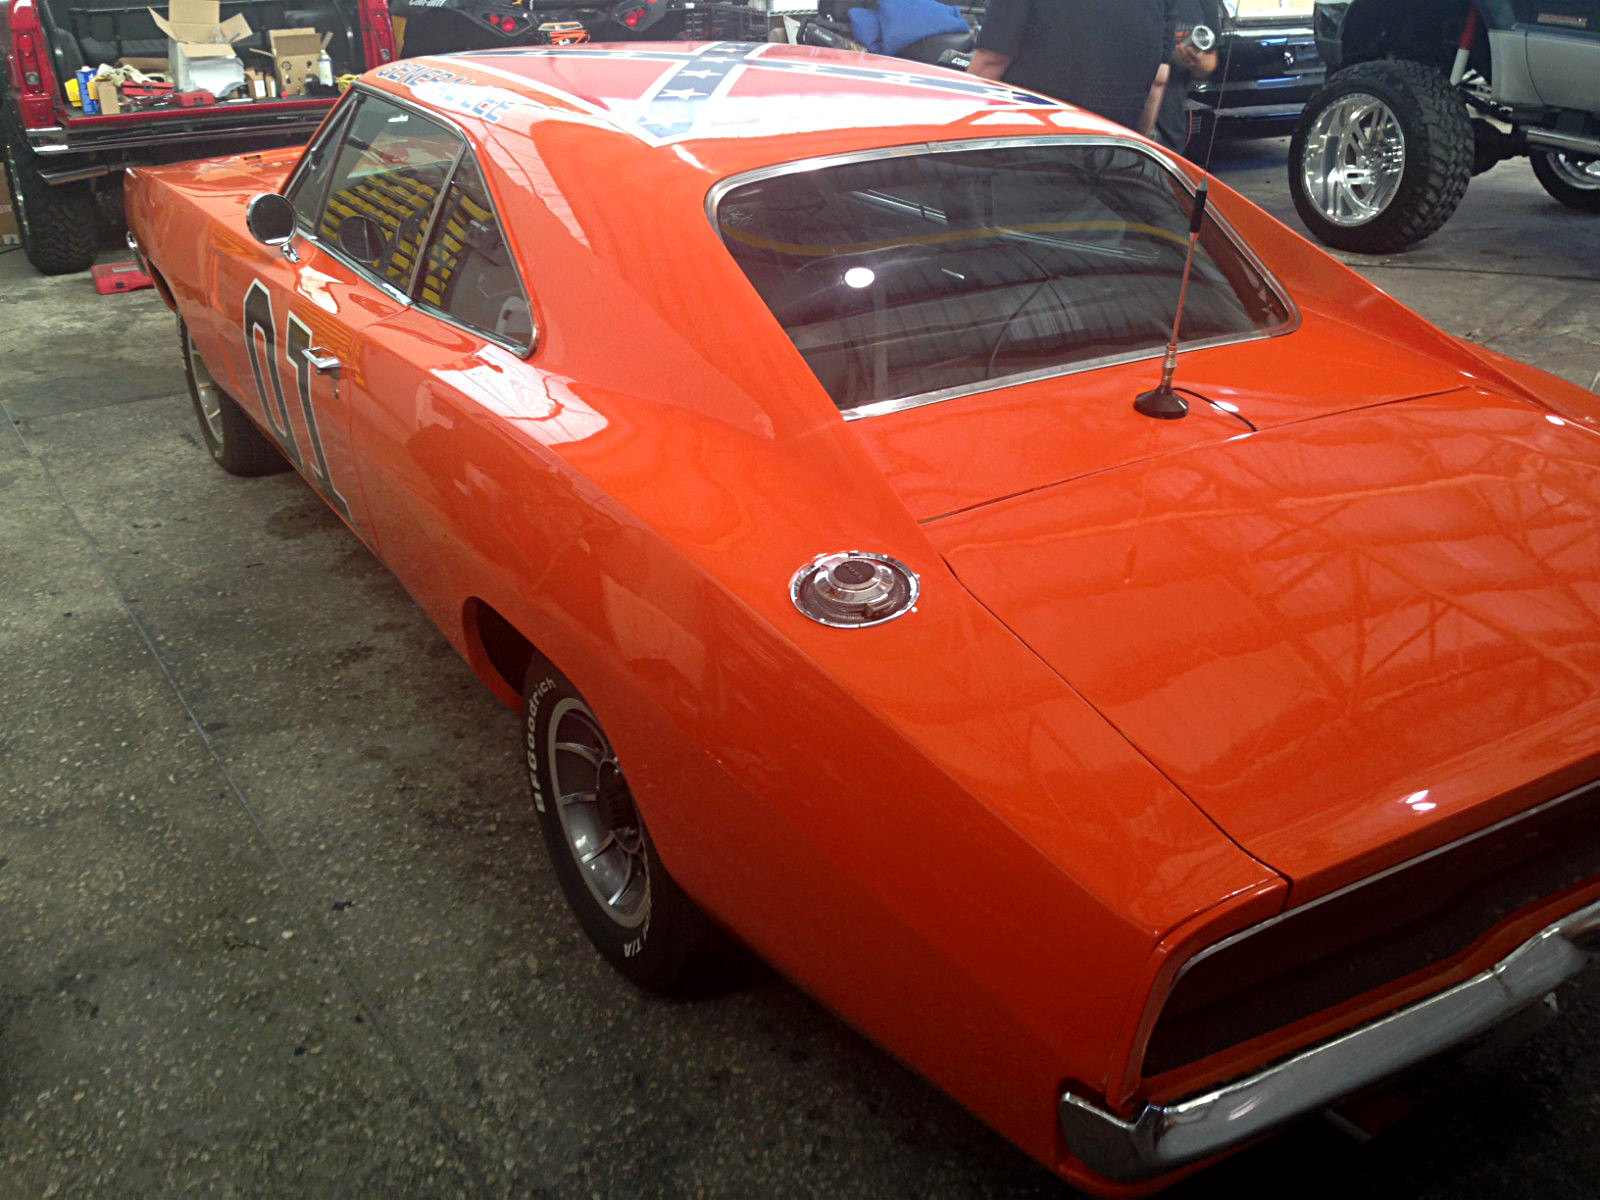 1969 Dodge Charger General Lee Classic Muscle Car For Sale: 1969 Dodge Charger General Lee Movie Car Fully Documented